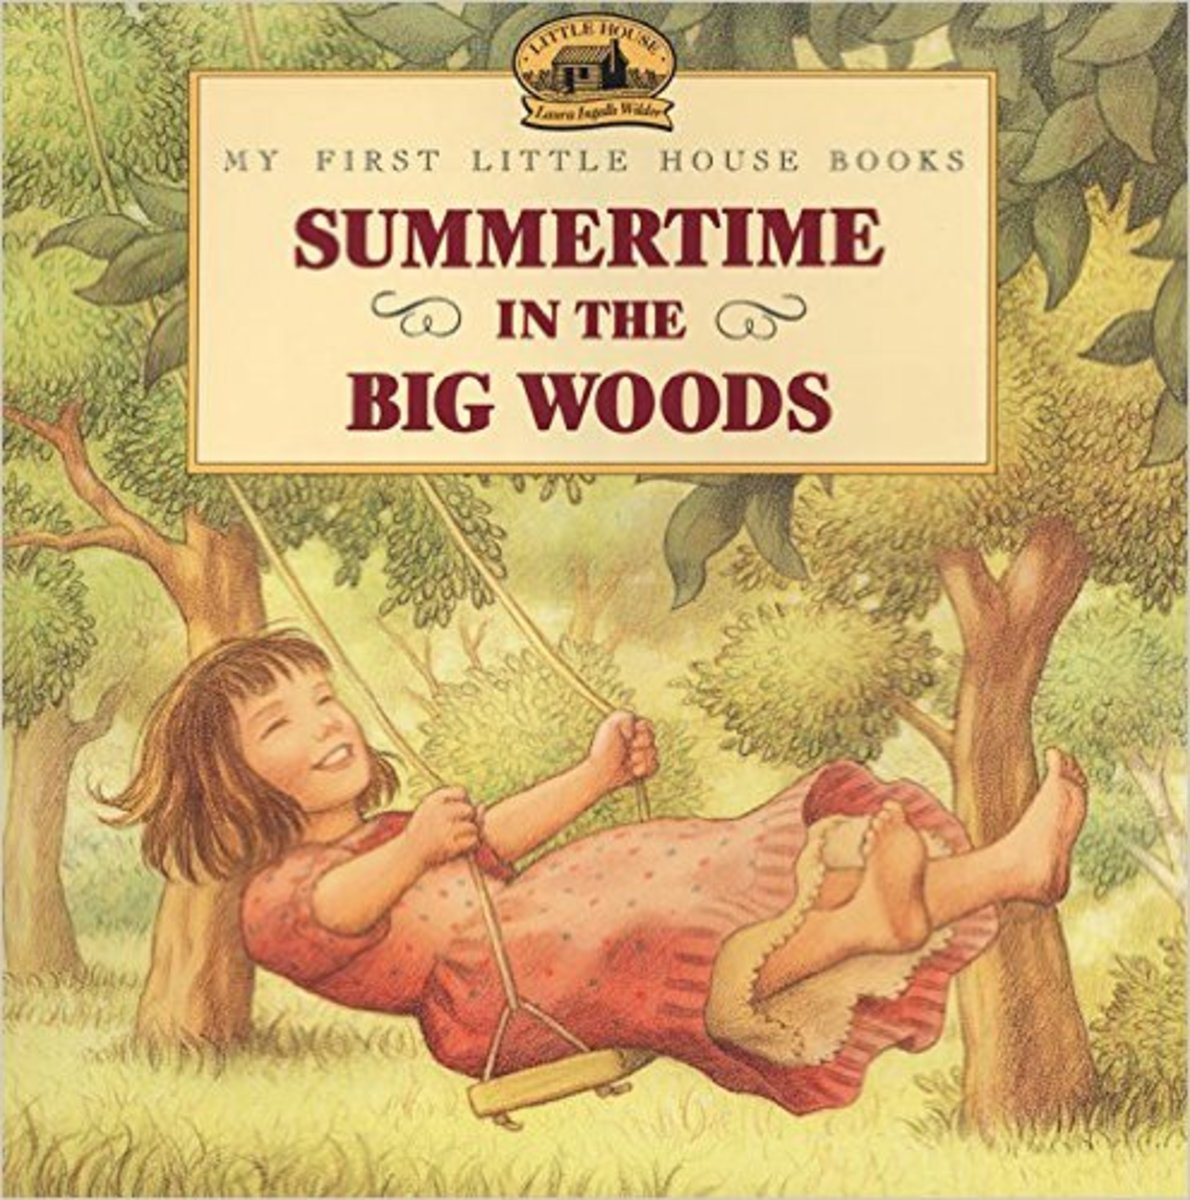 Summertime in the Big Woods (Little House Picture Book) by Laura Ingalls Wilder